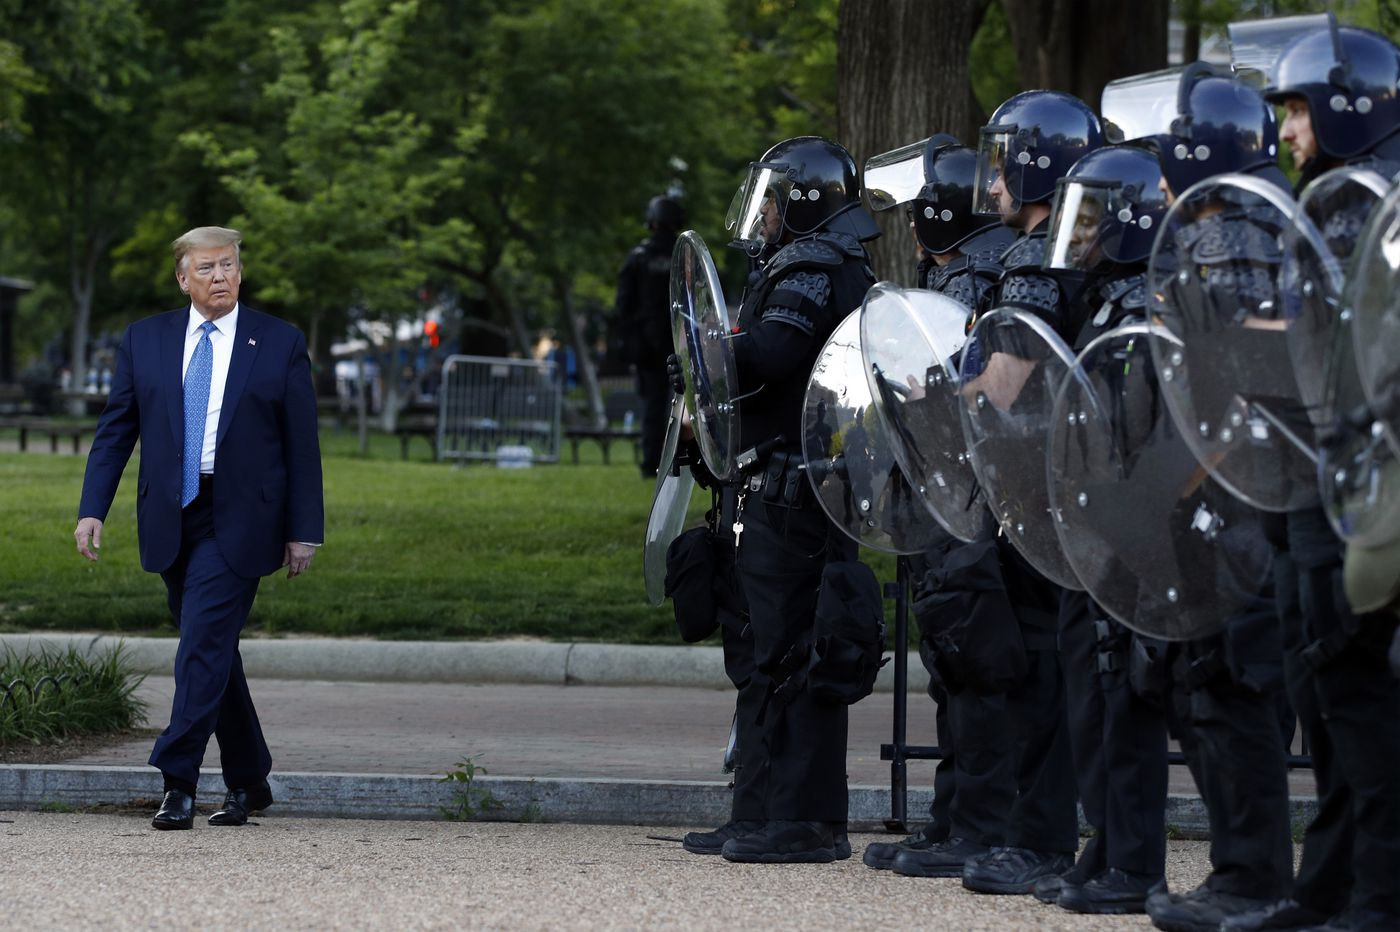 Attorney general personally ordered removal of protesters near White House